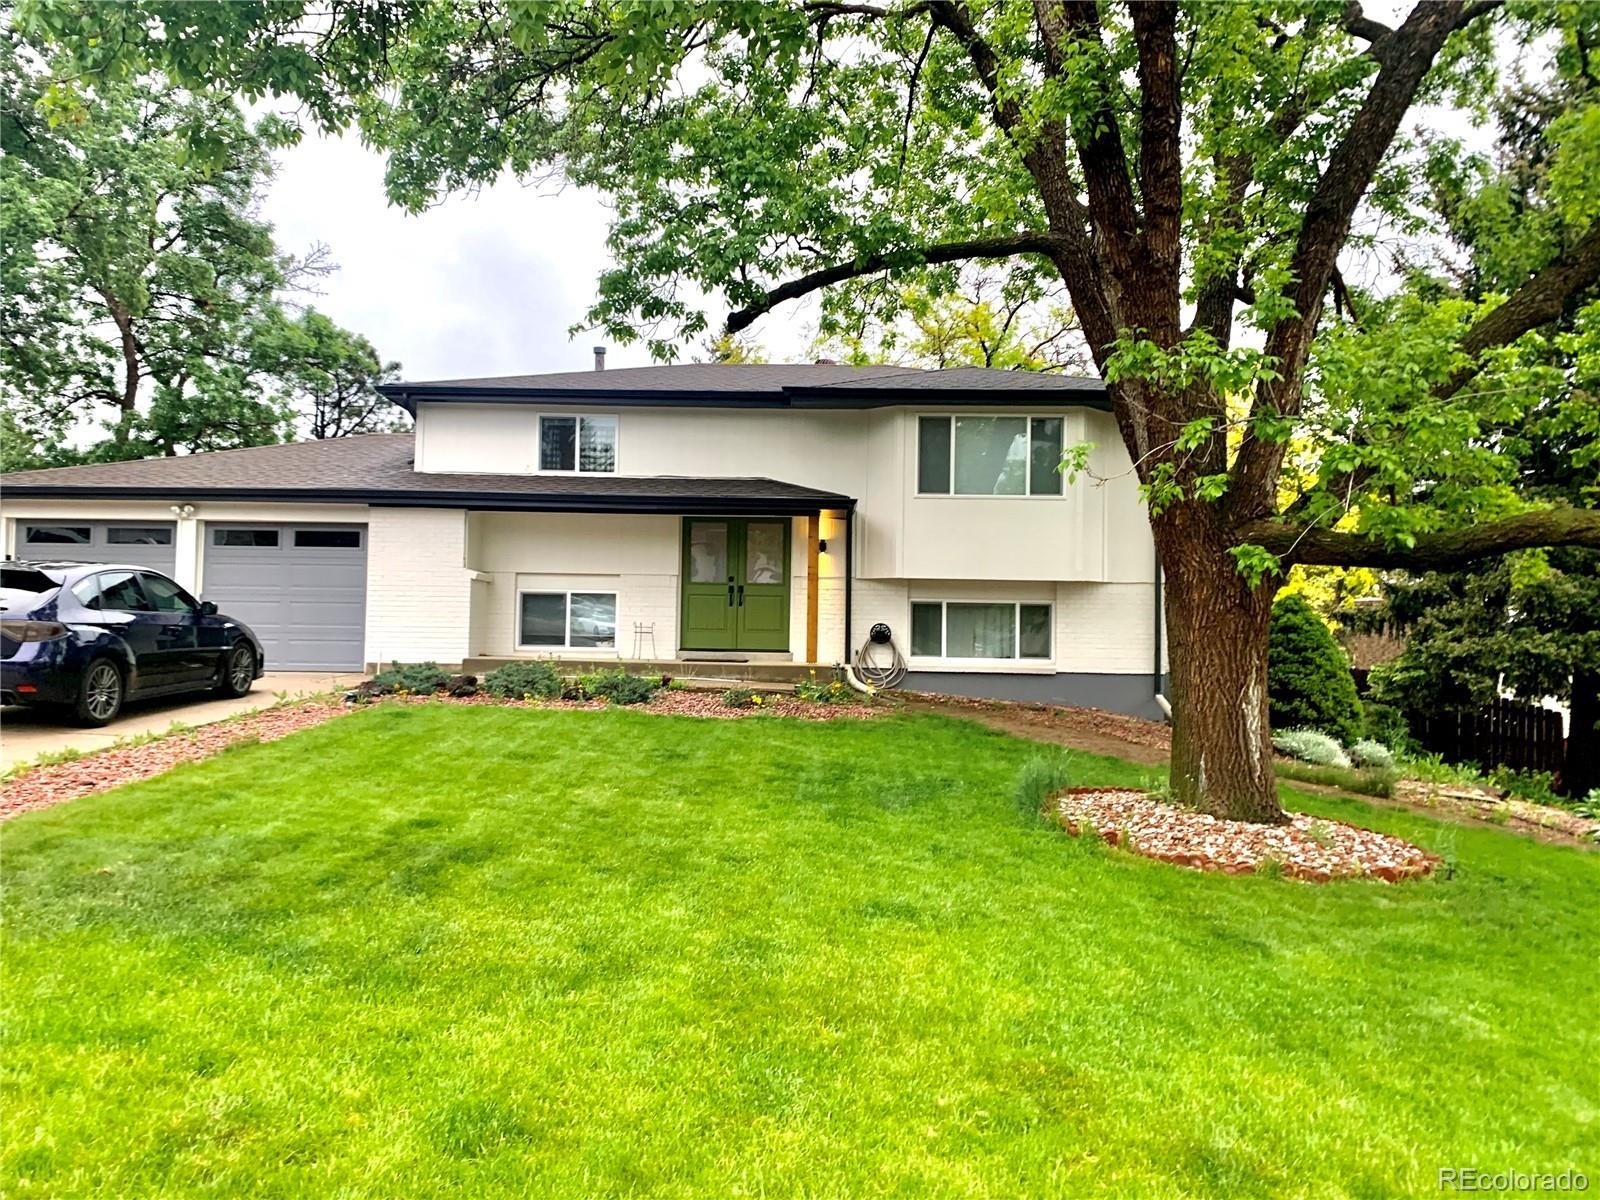 2380 S Garland Court, Lakewood, CO 80227 - #: 5667787